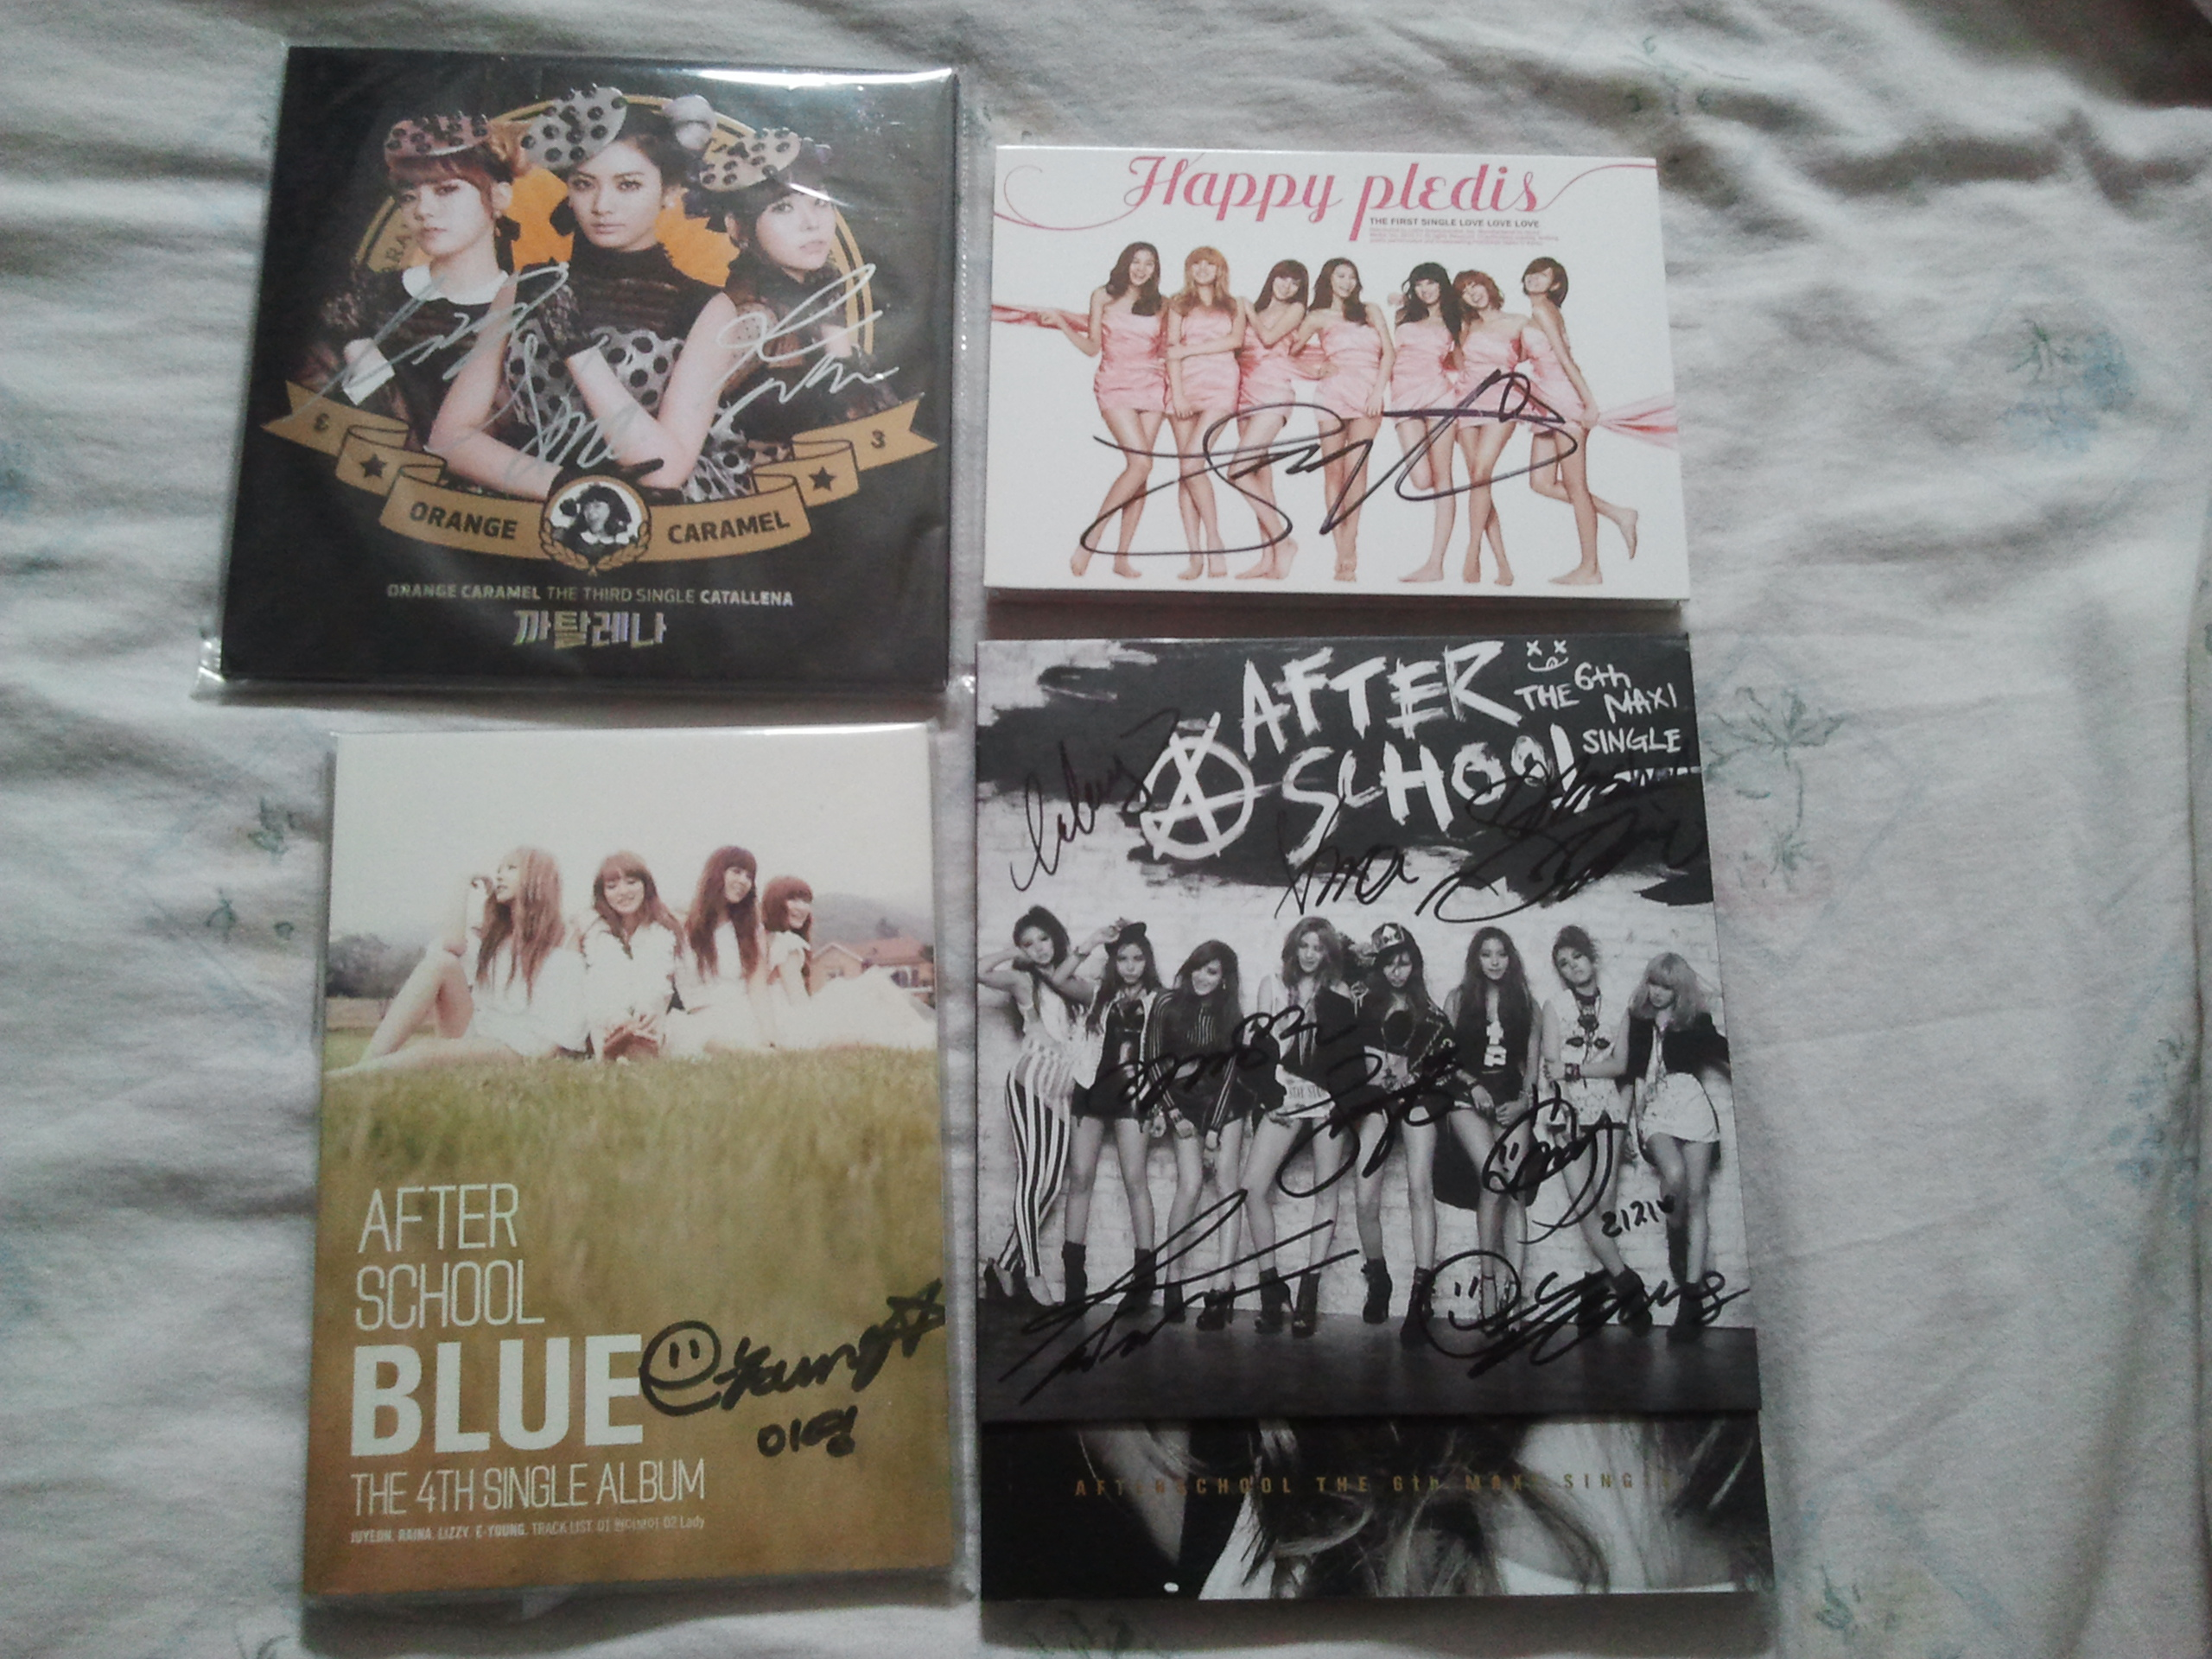 [DISCUSSION] Are the AS members changing their autographs? Calling detective PGZ and PBZ! 83472520140820134201